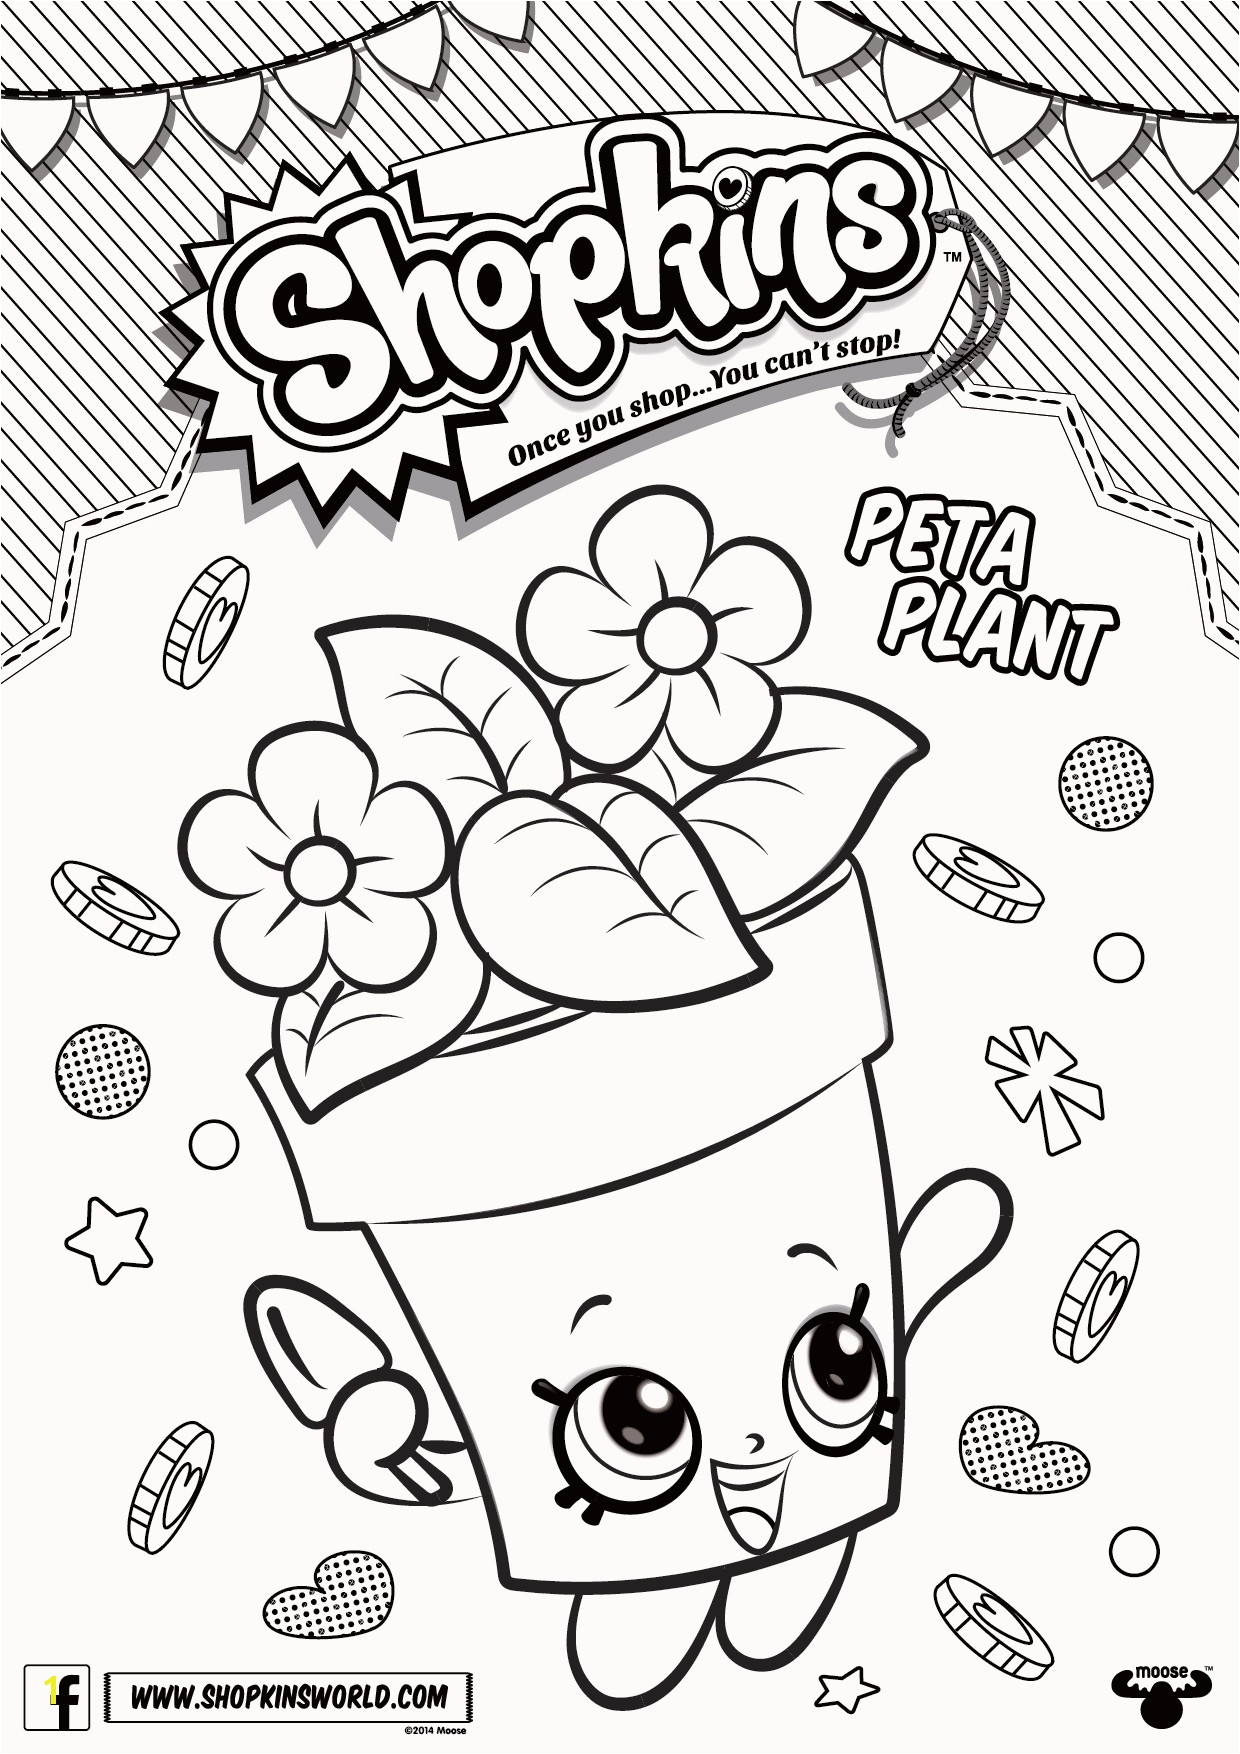 Poppy Corn Coloring Page New Shopkins Drawing Pages at Getdrawings 30 Fresh Poppy Corn Coloring